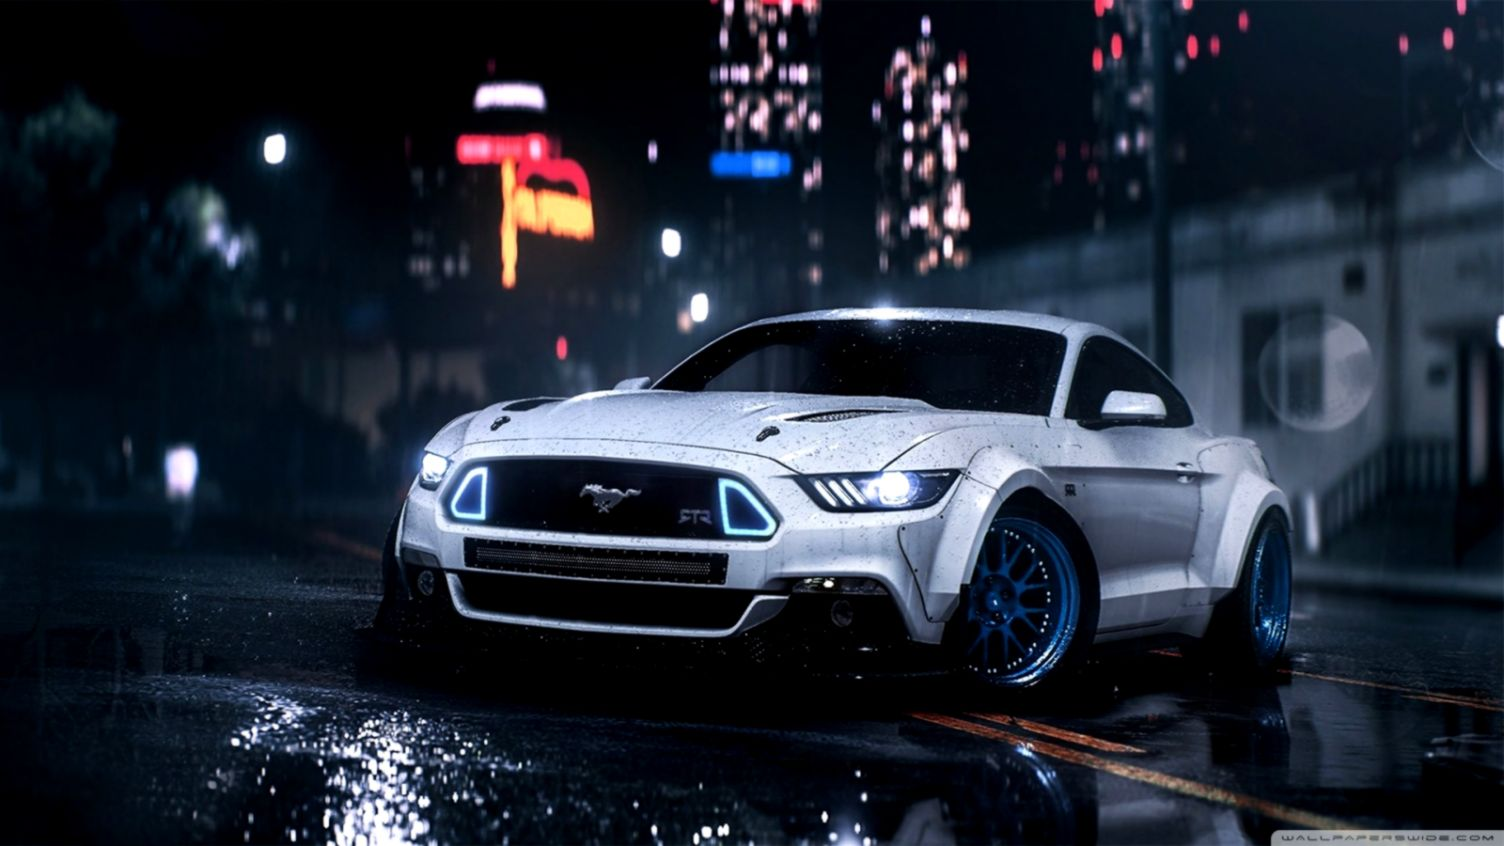 Mustang Wallpapers Hd And Images